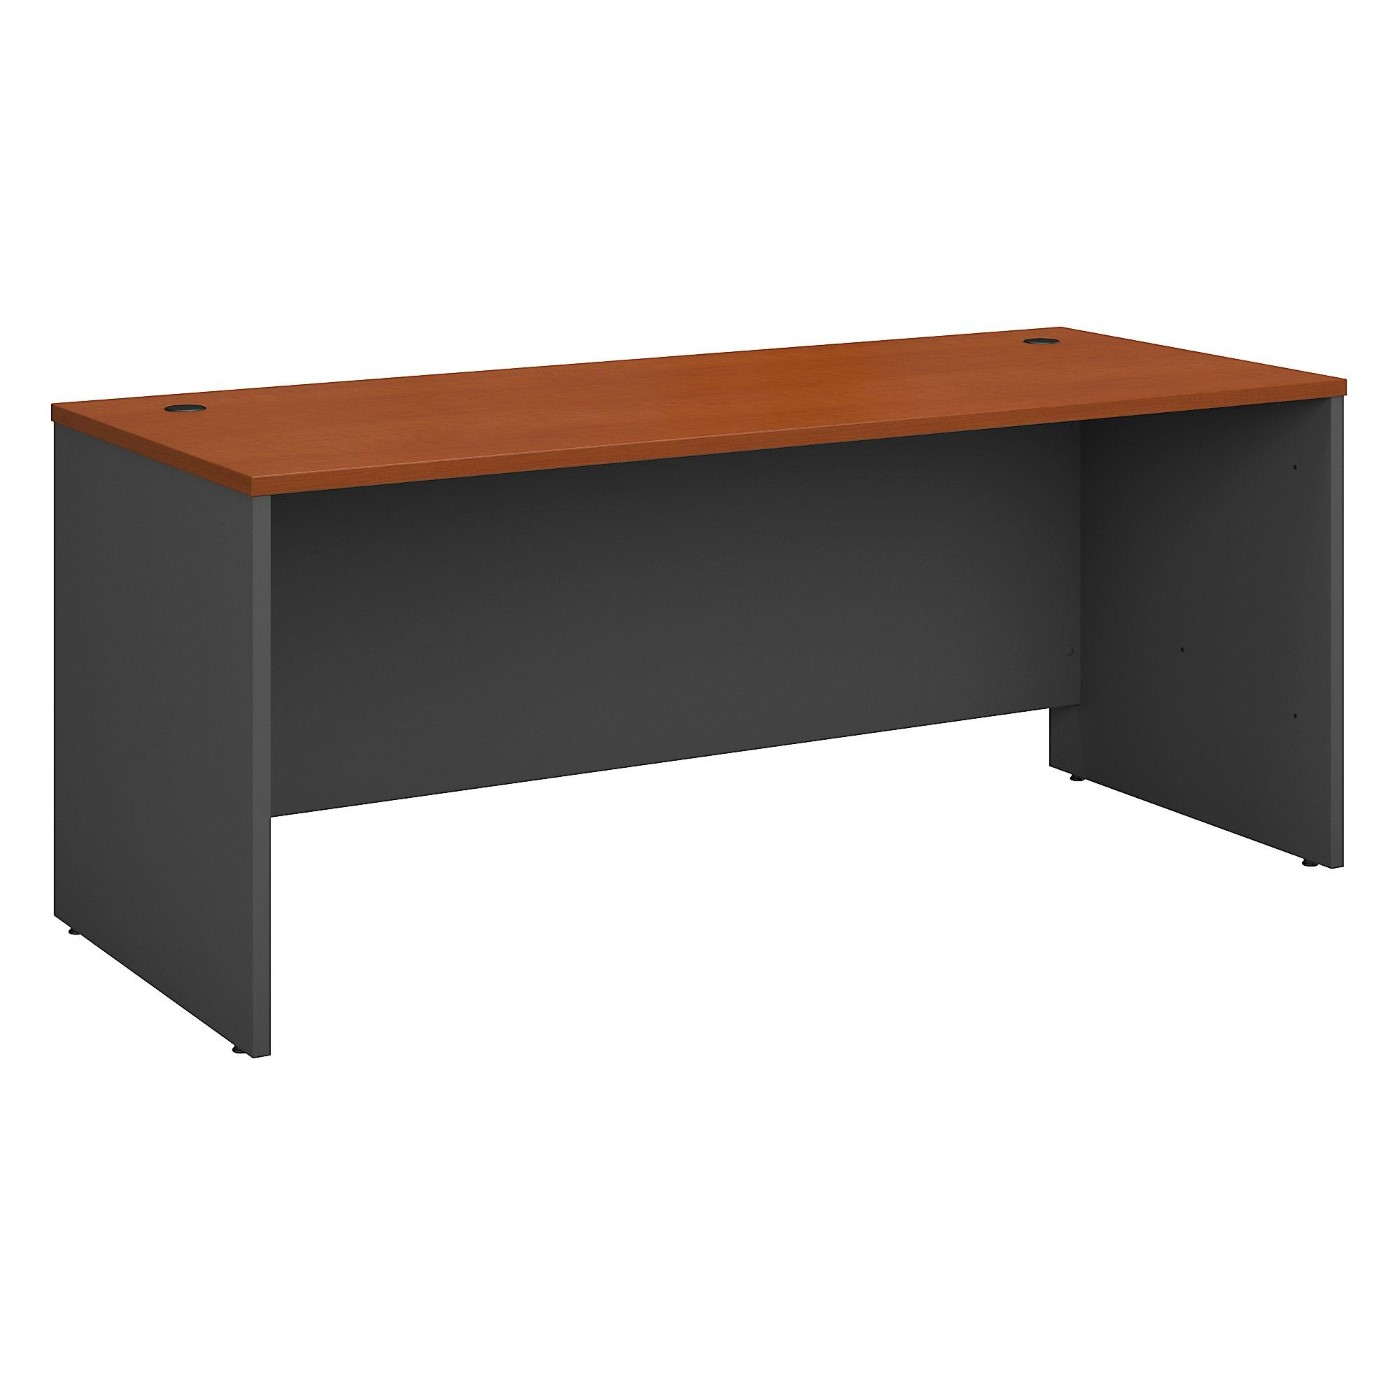 BUSH BUSINESS FURNITURE SERIES C 72W X 30D OFFICE DESK. FREE SHIPPING.  SALE DEDUCT 10% MORE ENTER '10percent' IN COUPON CODE BOX WHILE CHECKING OUT.